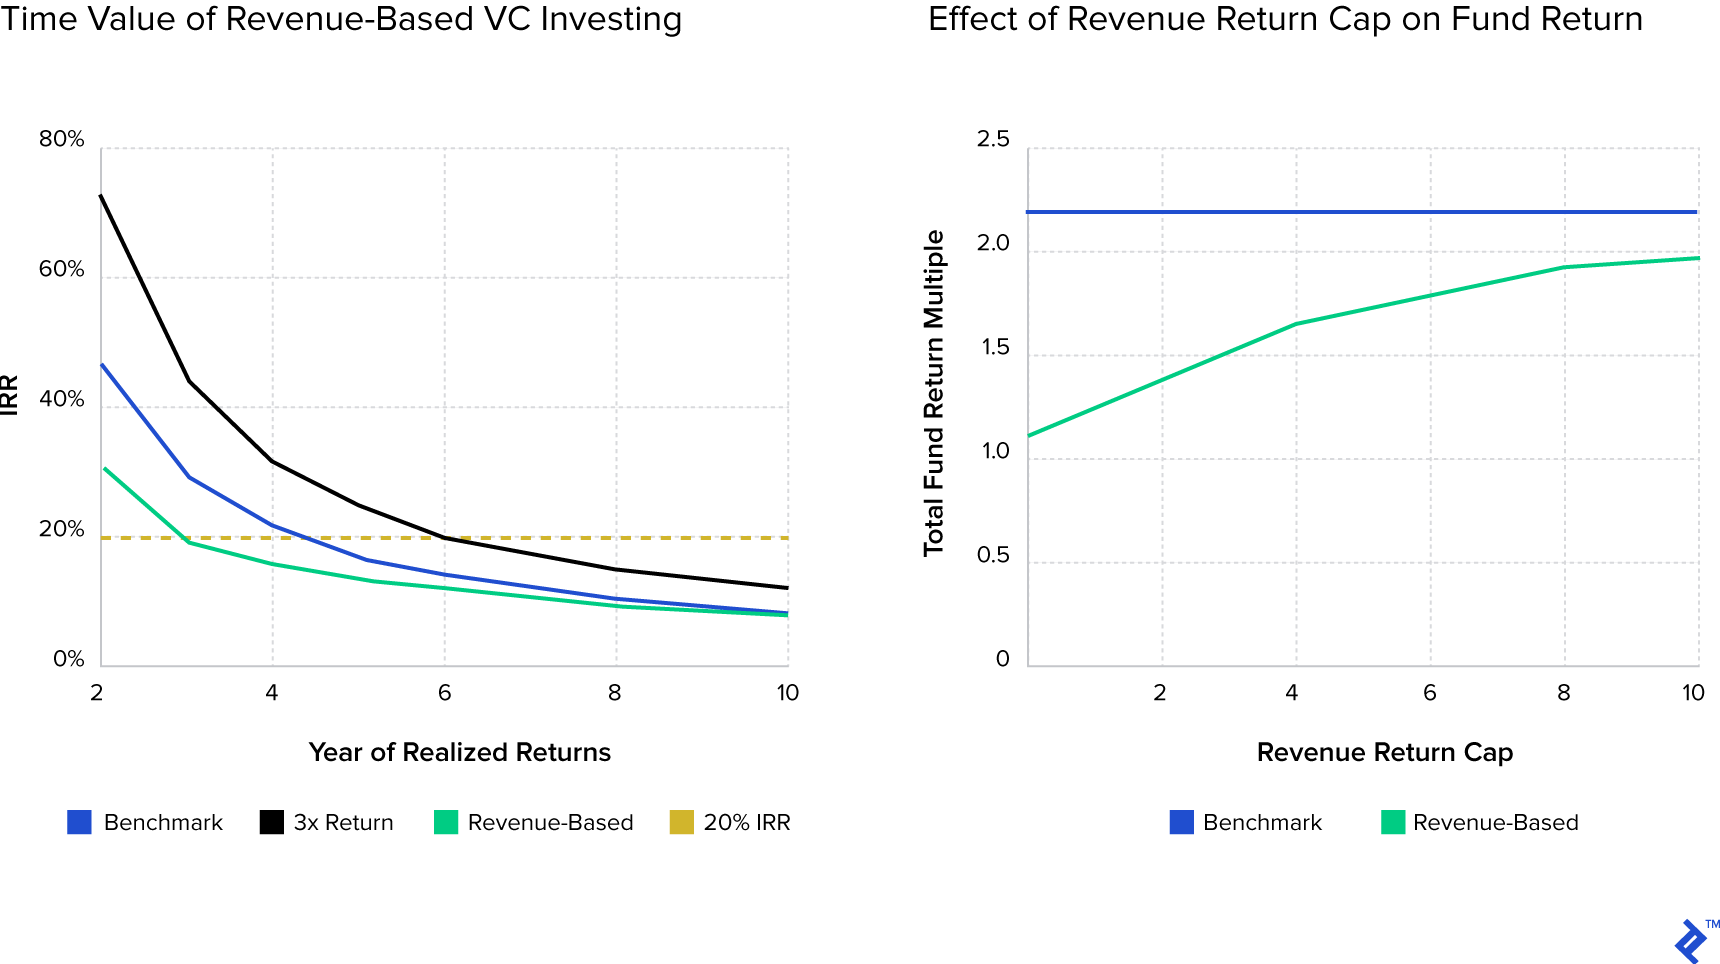 Charts showing time value of revenue-based VC investing and the effect of revenue return cap on fund return.